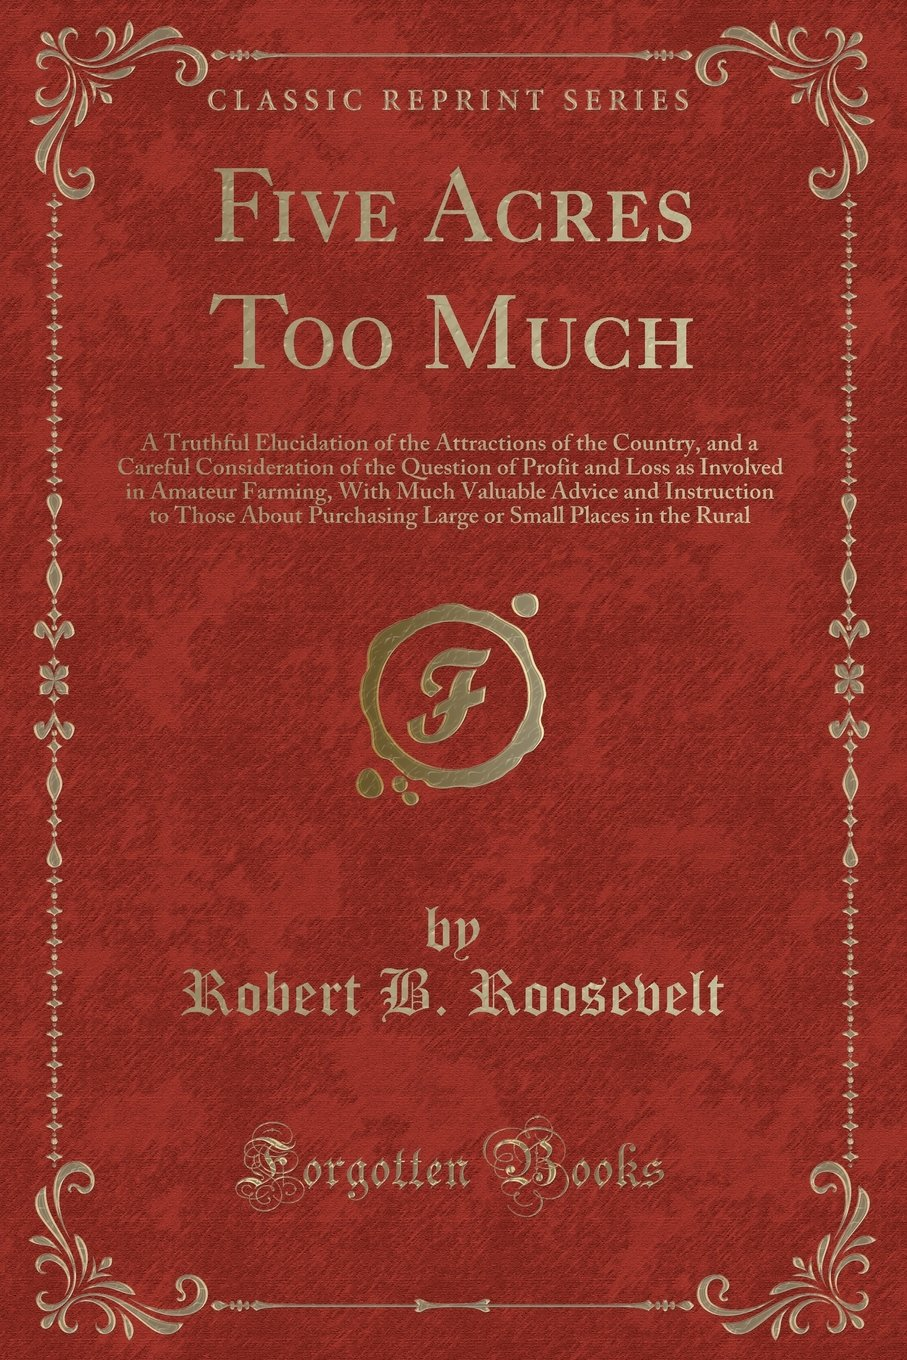 Five Acres Too Much: A Truthful Elucidation of the Attractions of the Country, and a Careful Consideration of the Question of Profit and Loss as to Those About Purchasing Large or Smal ebook